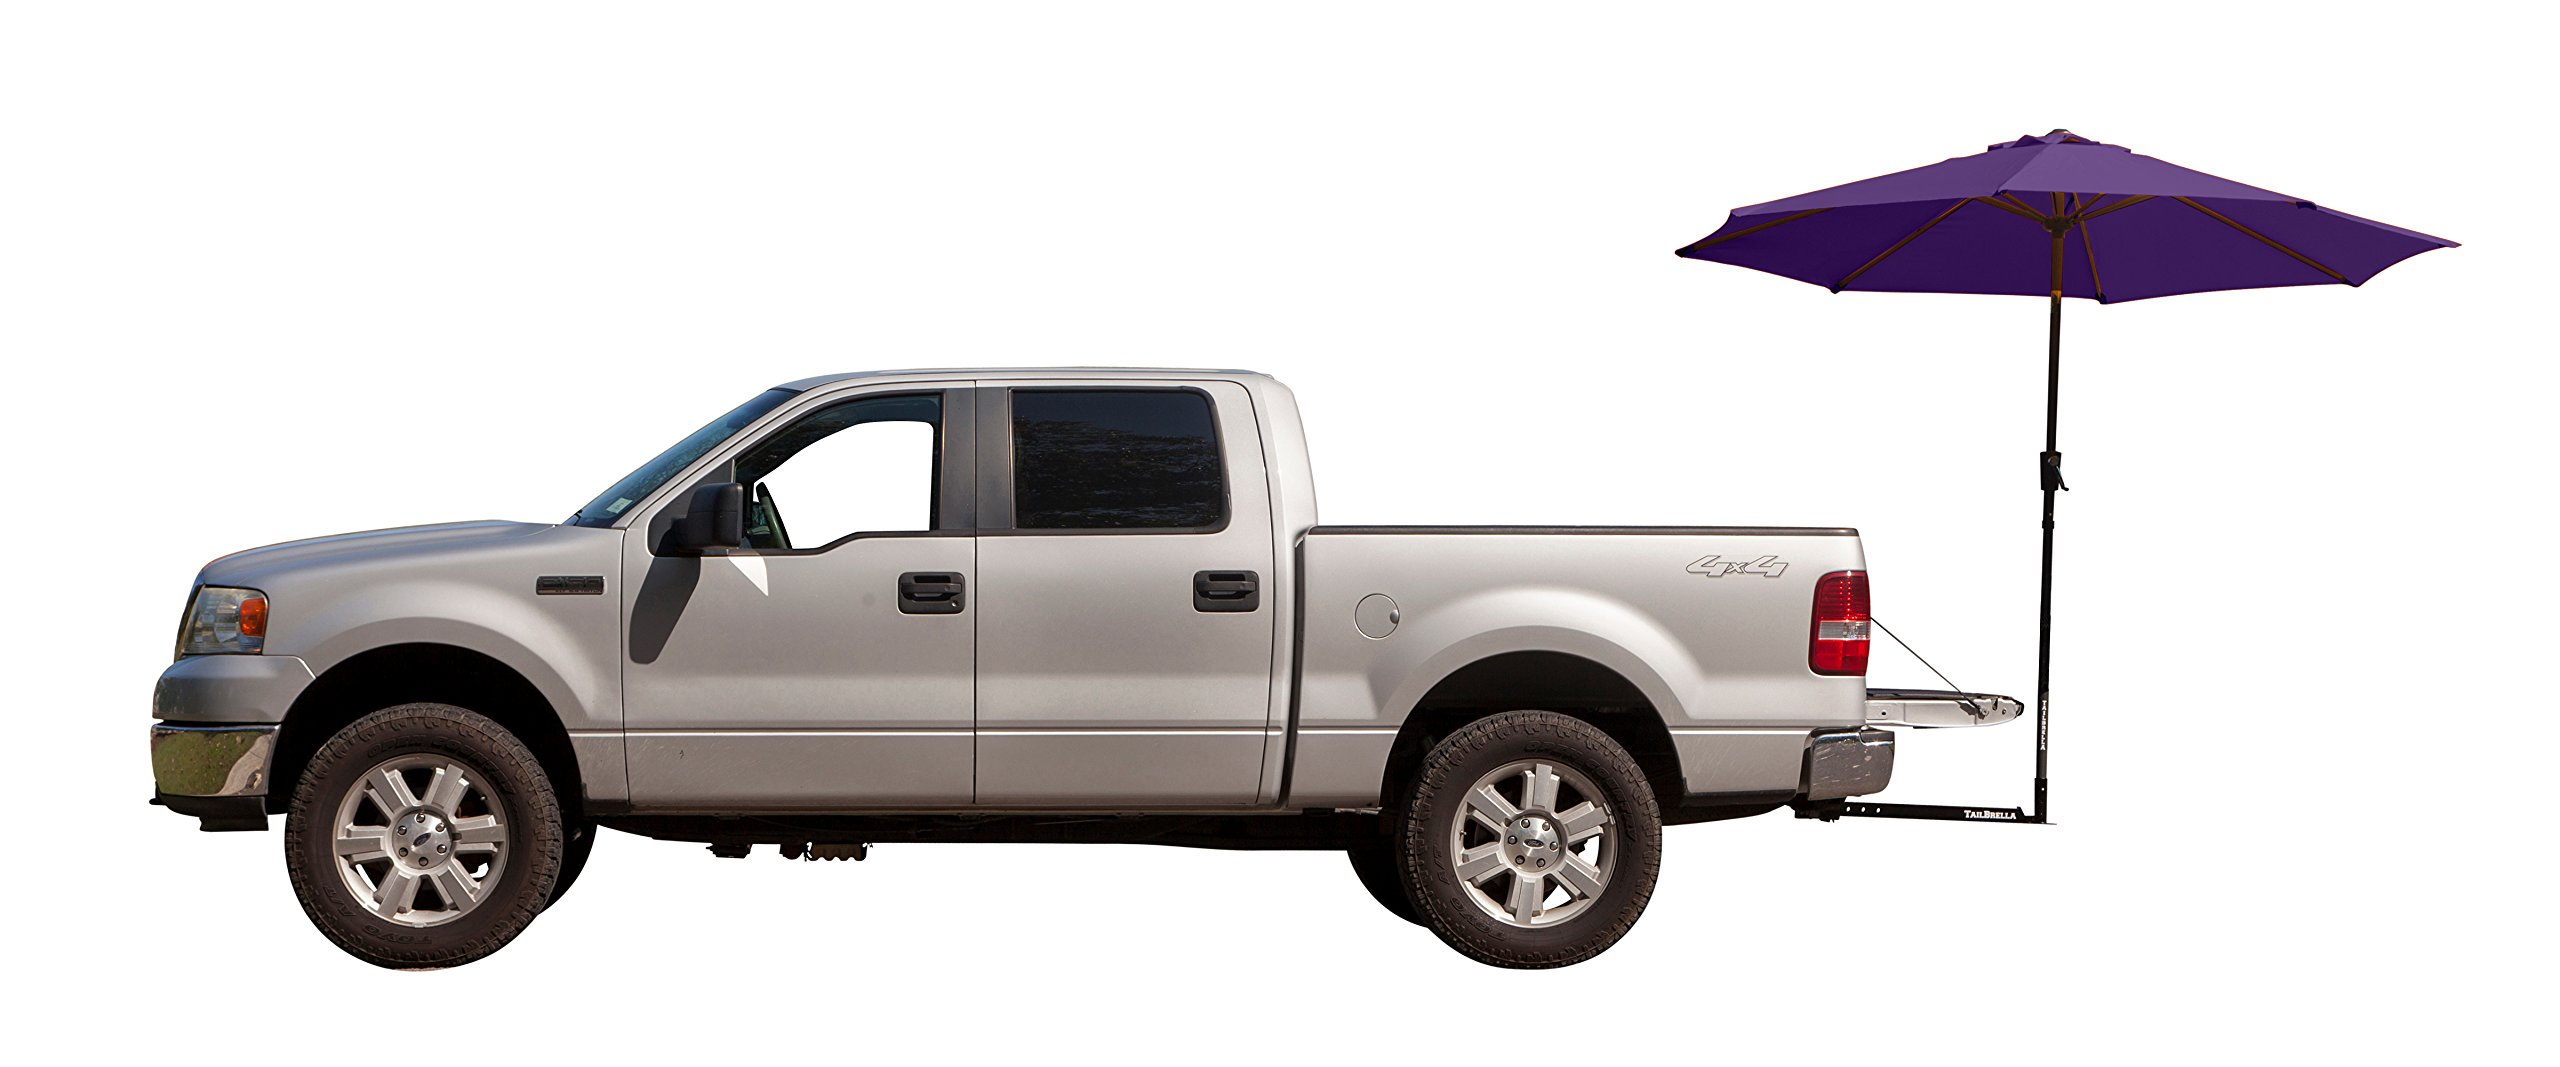 Tailbrella Purple Tailgate Hitch Umbrella Canopy for Truck SUV Tailgater. 9FT Large Water-Resistant Tailgating Tents for Outdoor Camping, Beach, Travel, Hunting. EZ Pop Up Umbrellas for Shade by Tailbrella